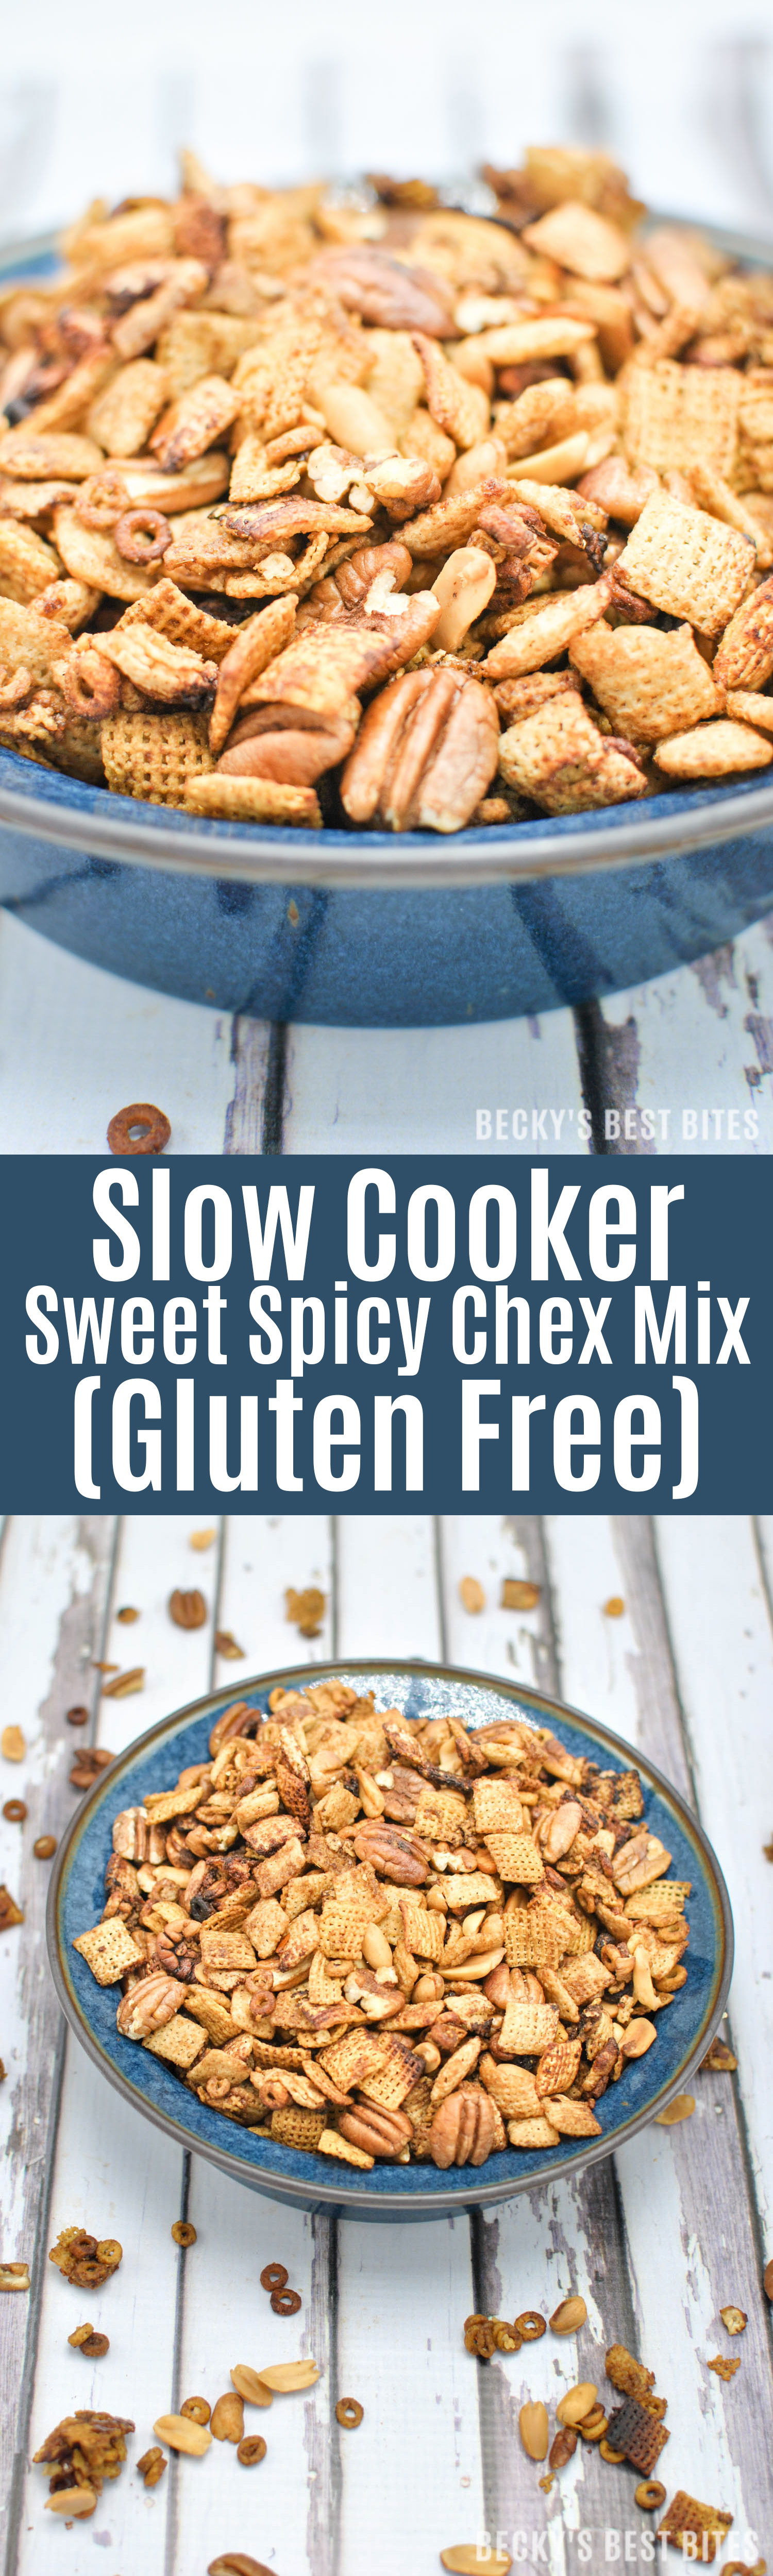 Slow Cooker Sweet Spicy Chex Mix (Gluten Free) is a healthier option for perfect the summertime snack. Learn about the variety and versatility of gluten free cereal at Publix and grab your coupon today! #GlutenFreeCereal #glutenfreecherrios #PublixGlutenFreeCereals #ad | beckysbestbites.com